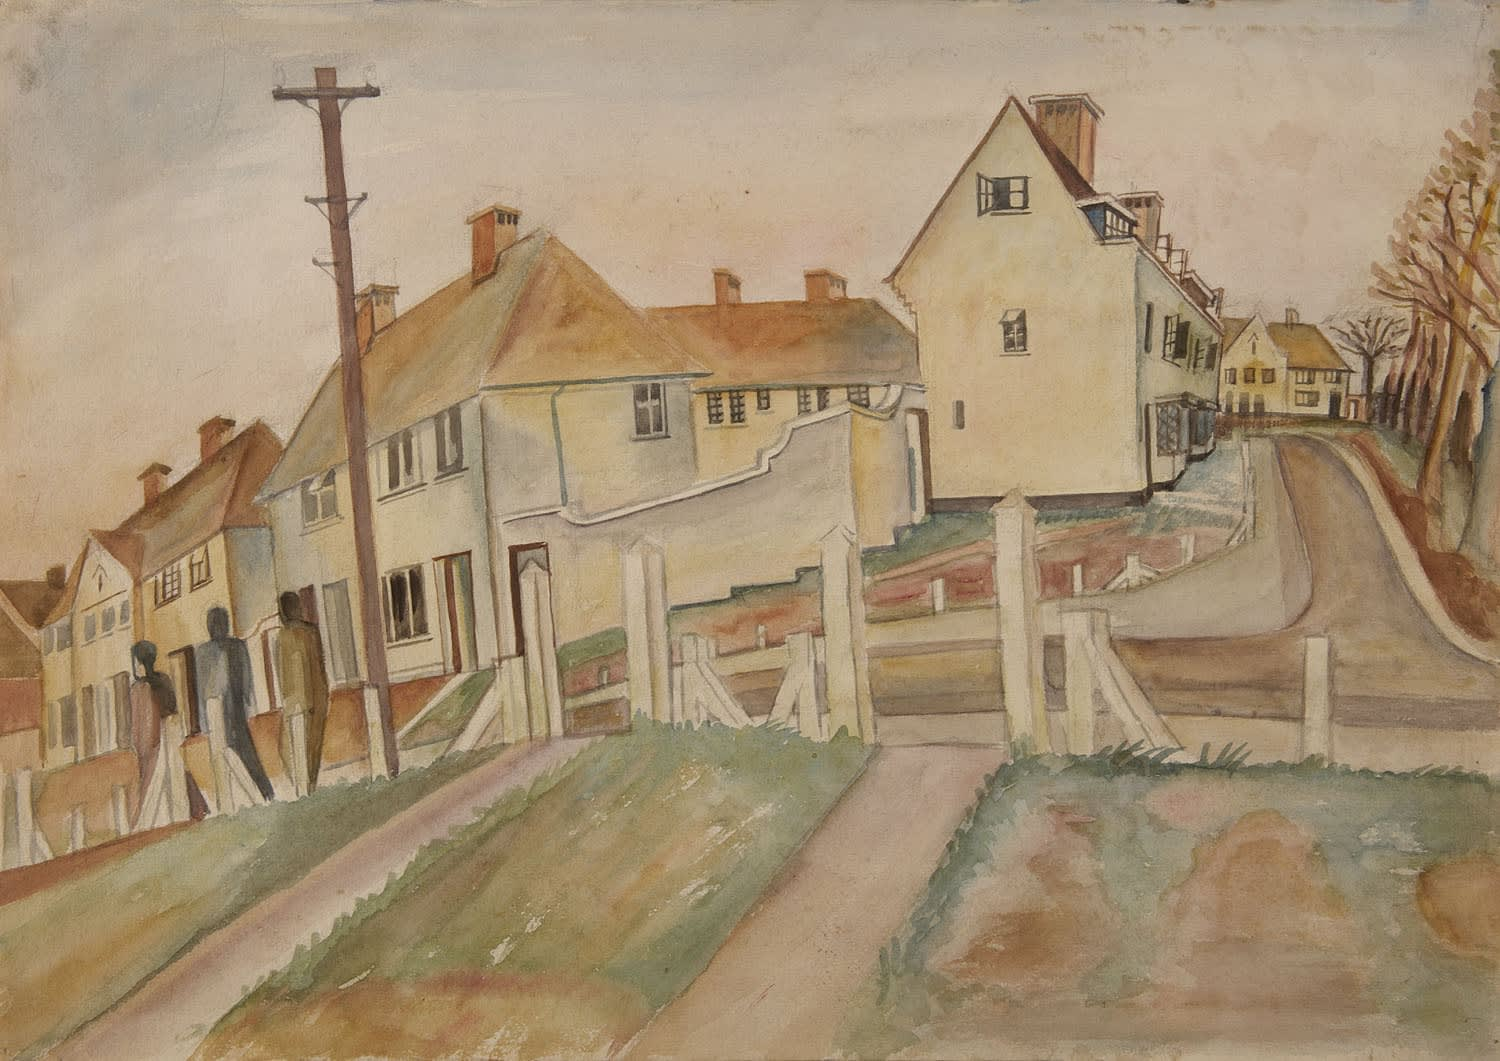 Alfred Lomnitz (1892-1953) Suburban Scene (Huyton Camp) c.1940-41 Watercolour and pencil on paper 35.5 x 50.5 cm Ben Uri Collection © Alfred Lomnitz estate